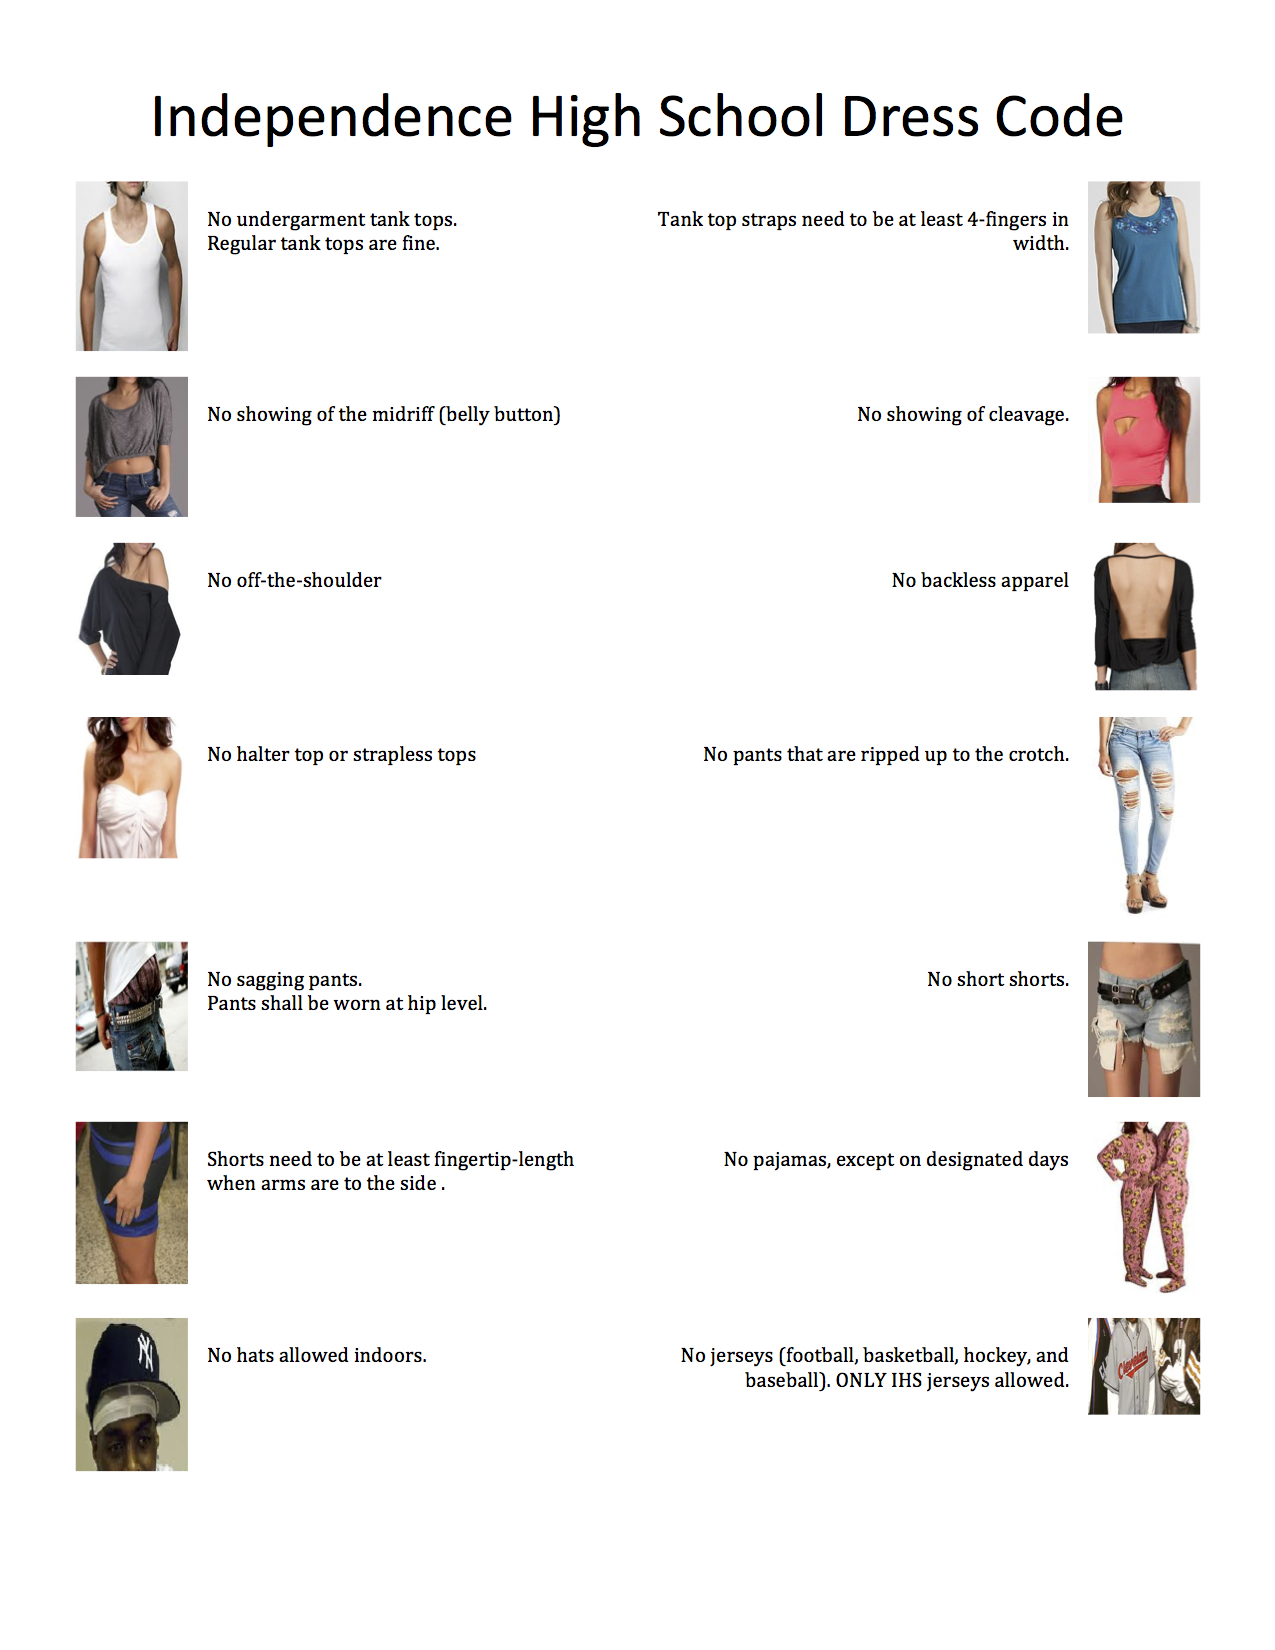 IHS Dress Code explaned